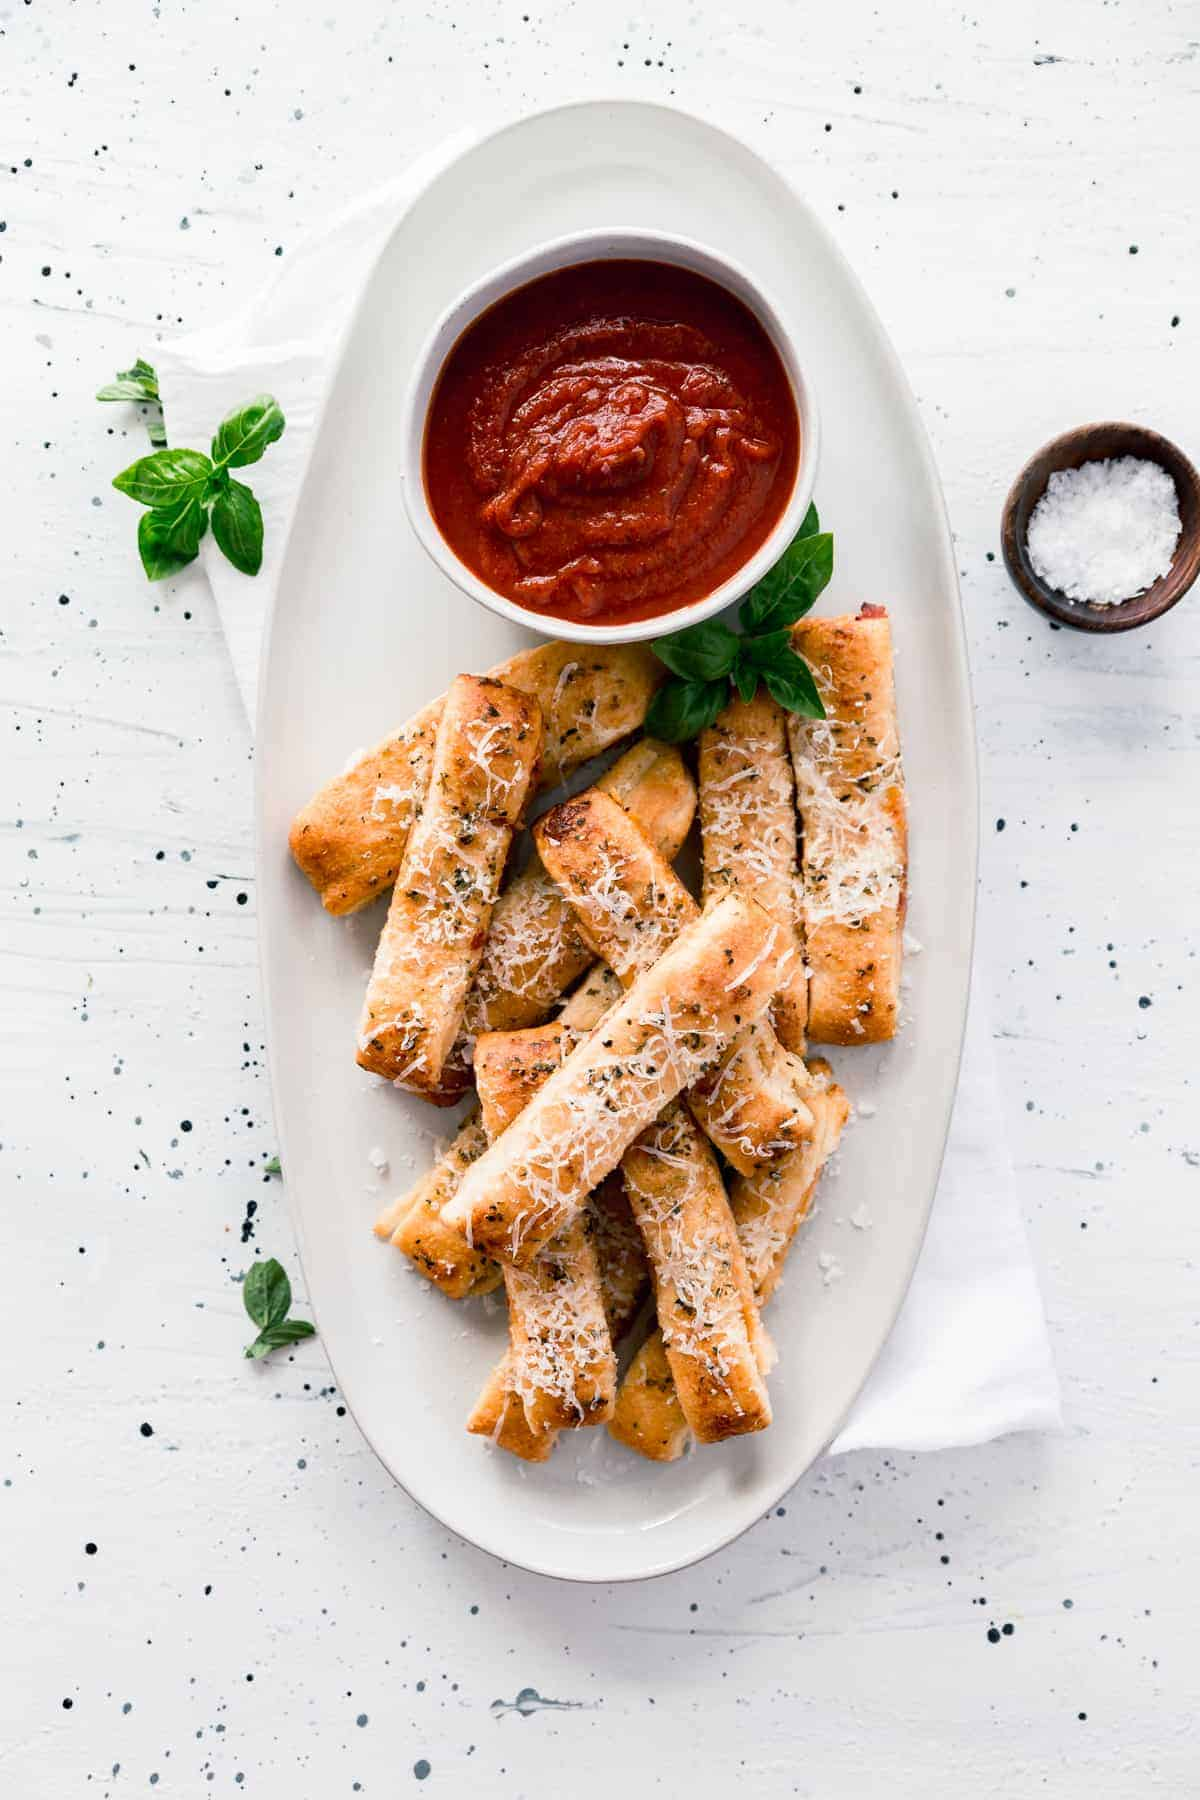 Easy cheesy pizza sticks are made with store-bought dough, pizza sauce, and cheese and only take 20 minutes to make, start to finish.